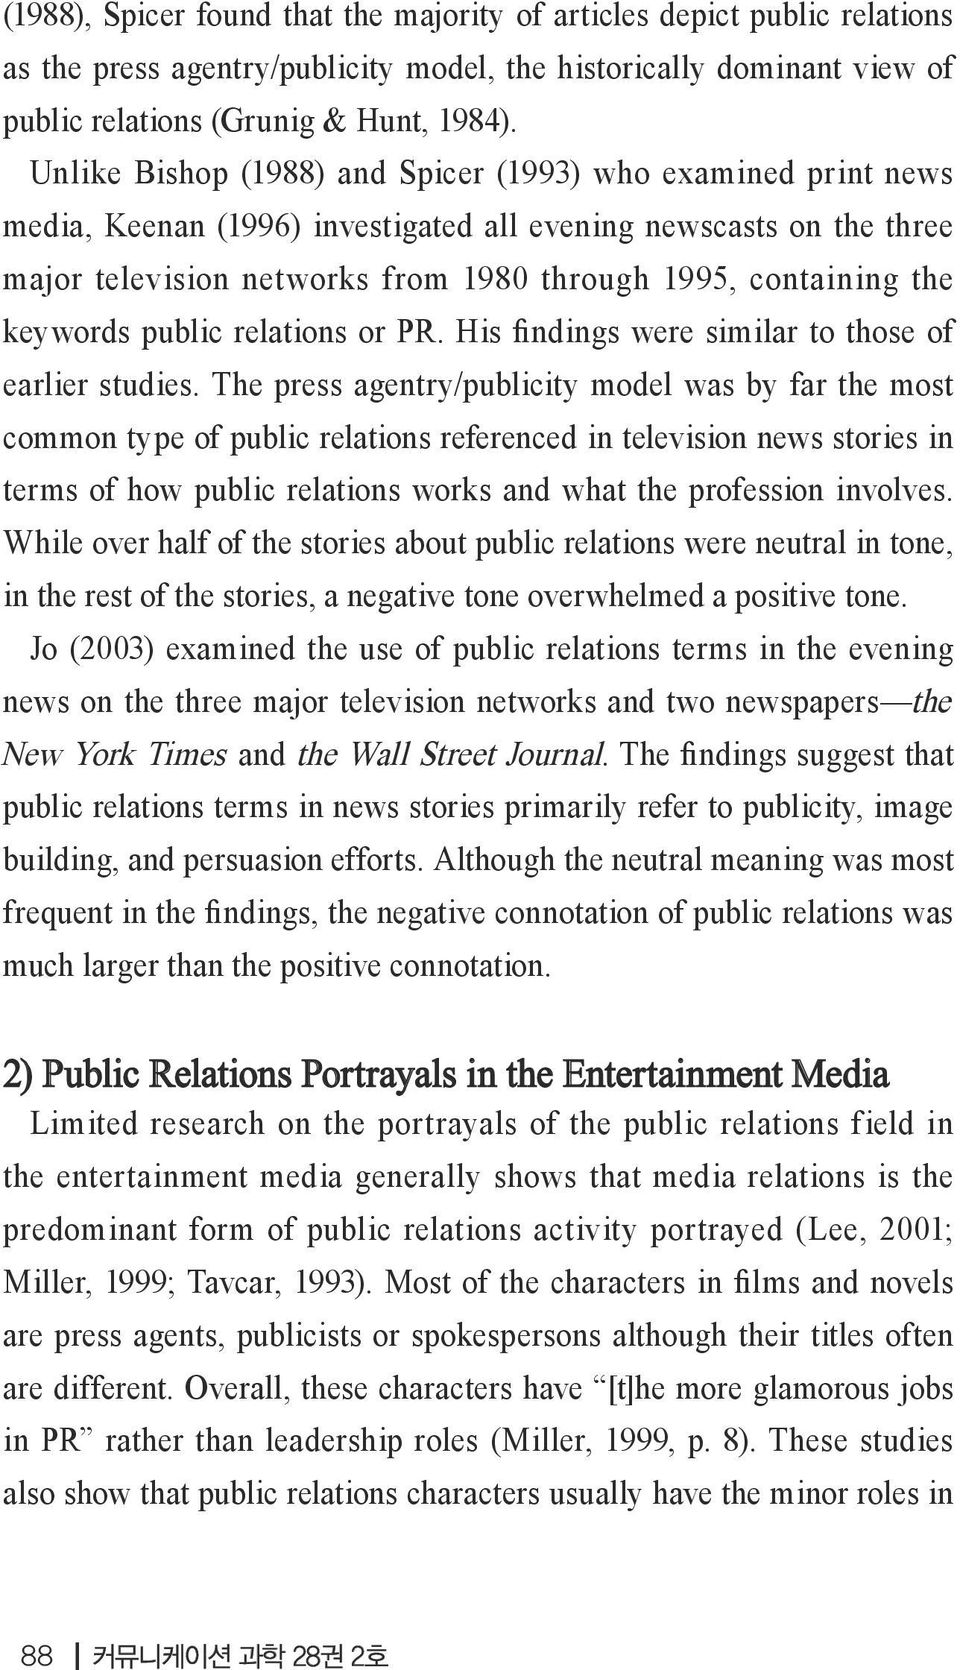 keywords public relations or PR. His findings were similar to those of earlier studies.